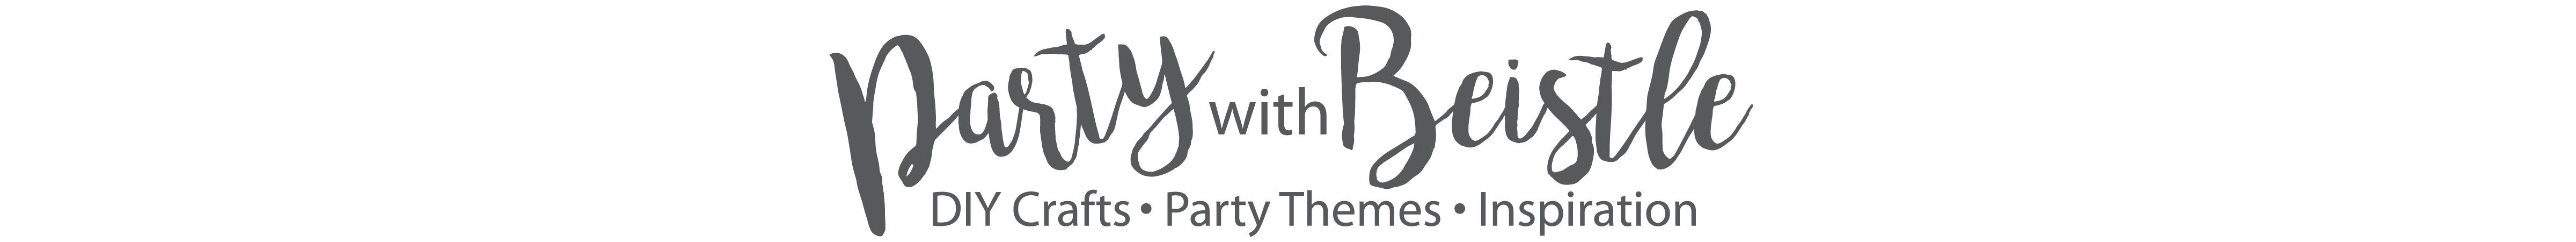 party with beistle logo